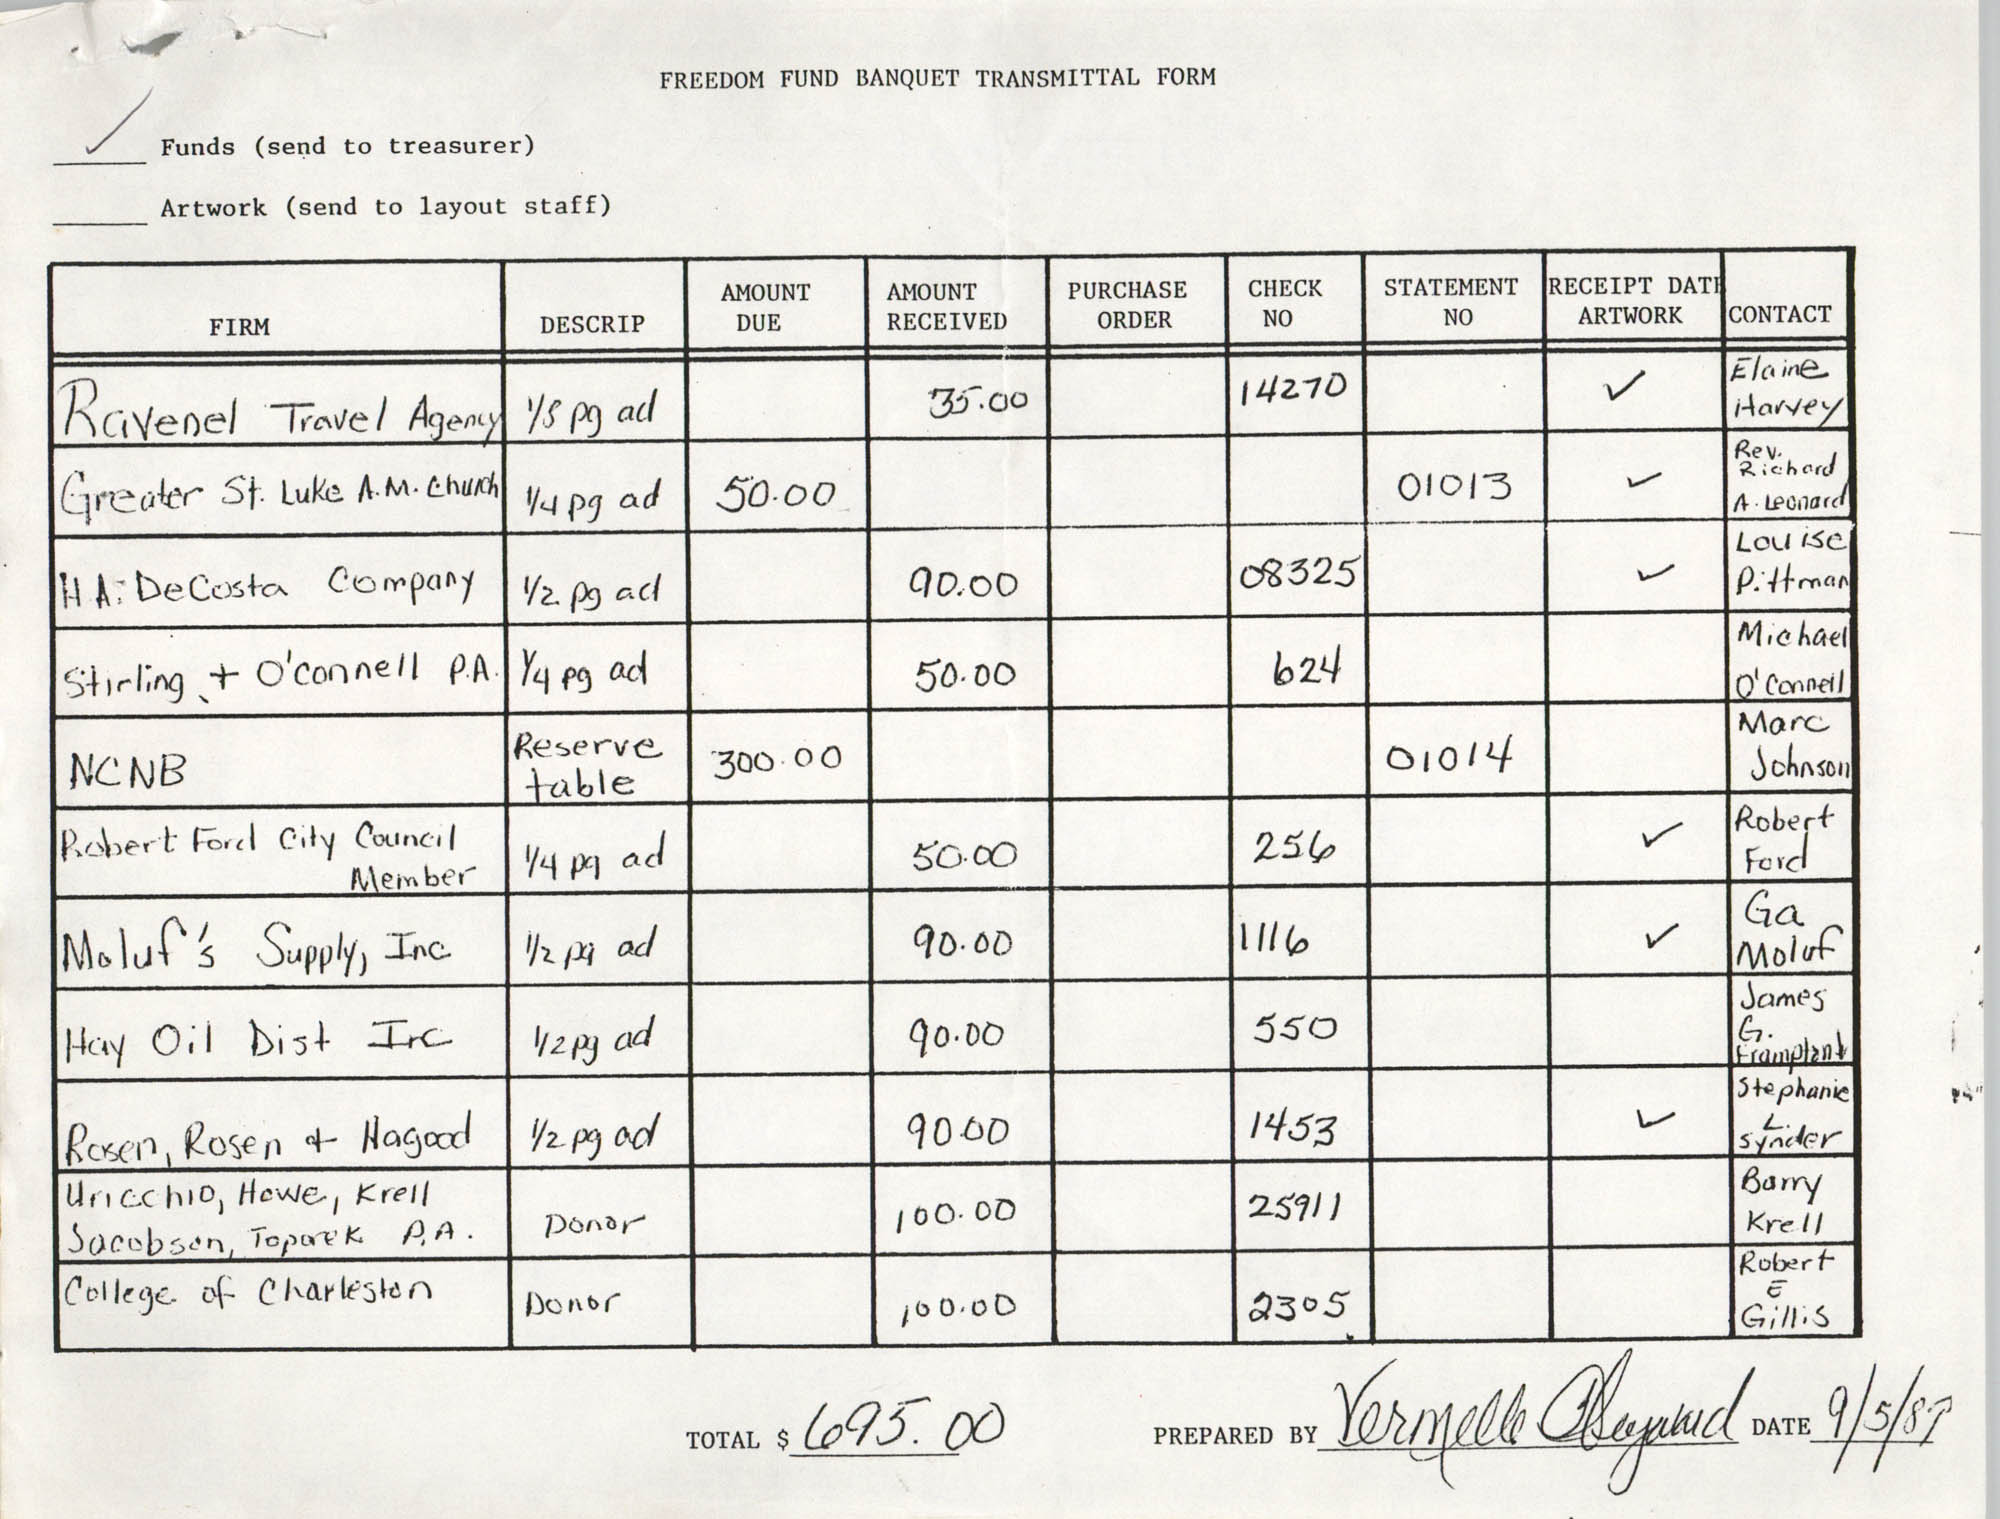 Freedom Fund Banquet Transmittal Forms, 1987